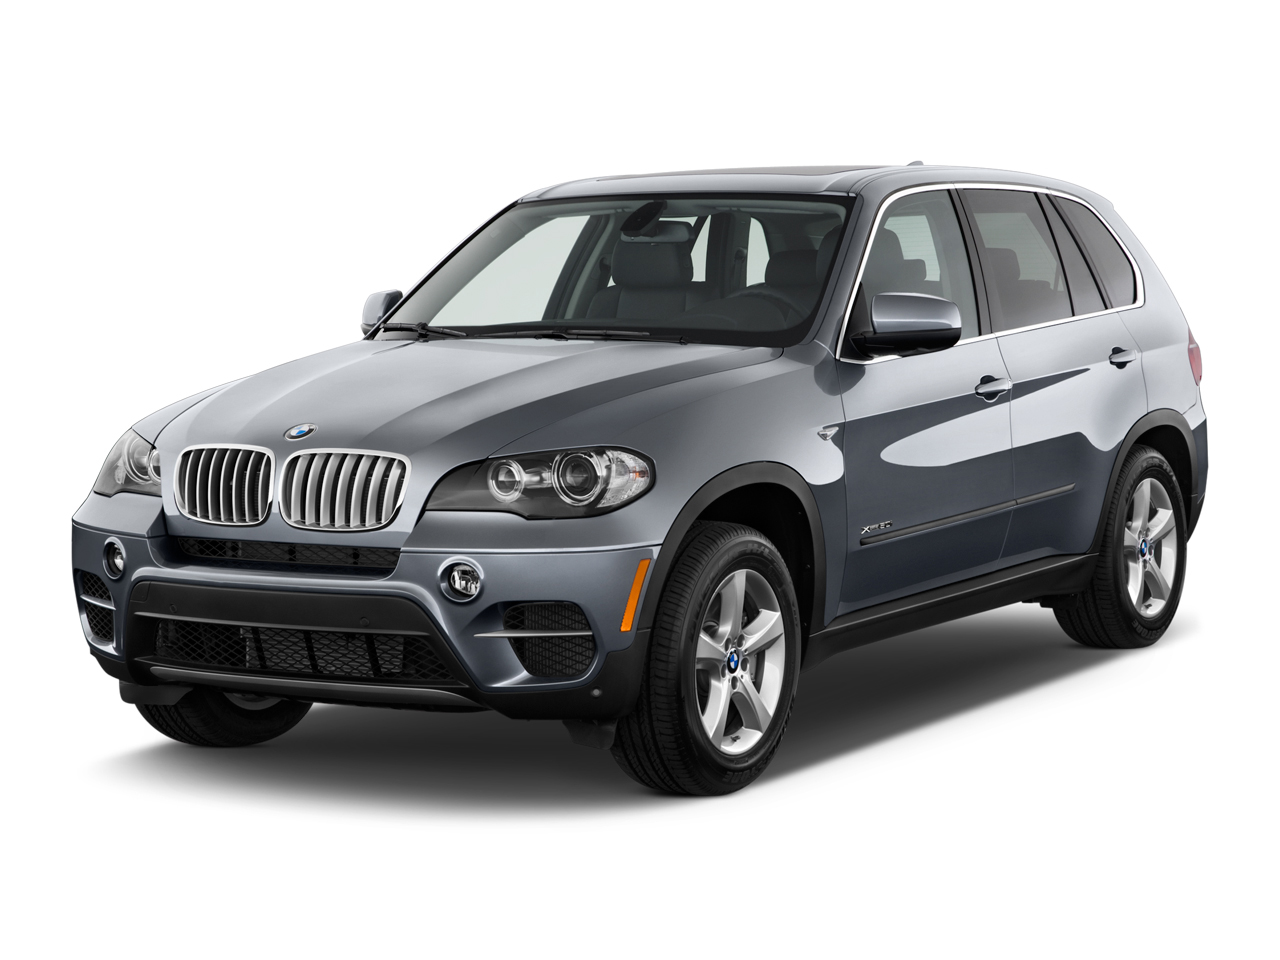 Jeep Fort Worth >> 2012 BMW X5 Review, Ratings, Specs, Prices, and Photos ...